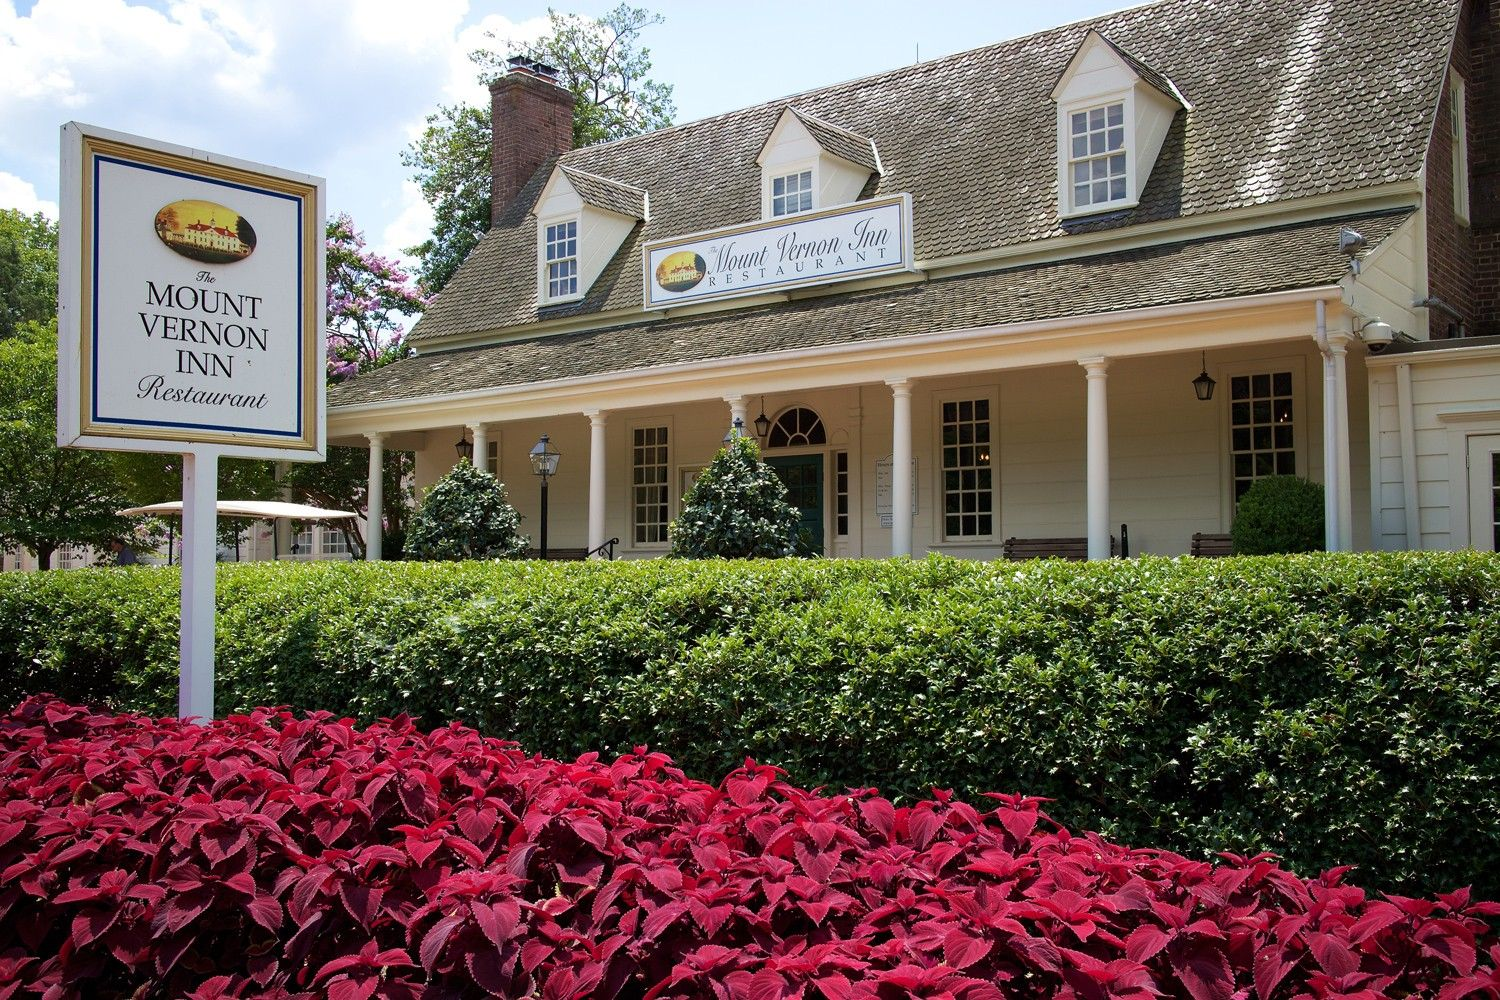 Savor The Flavors Of Early America At The Mount Vernon Inn